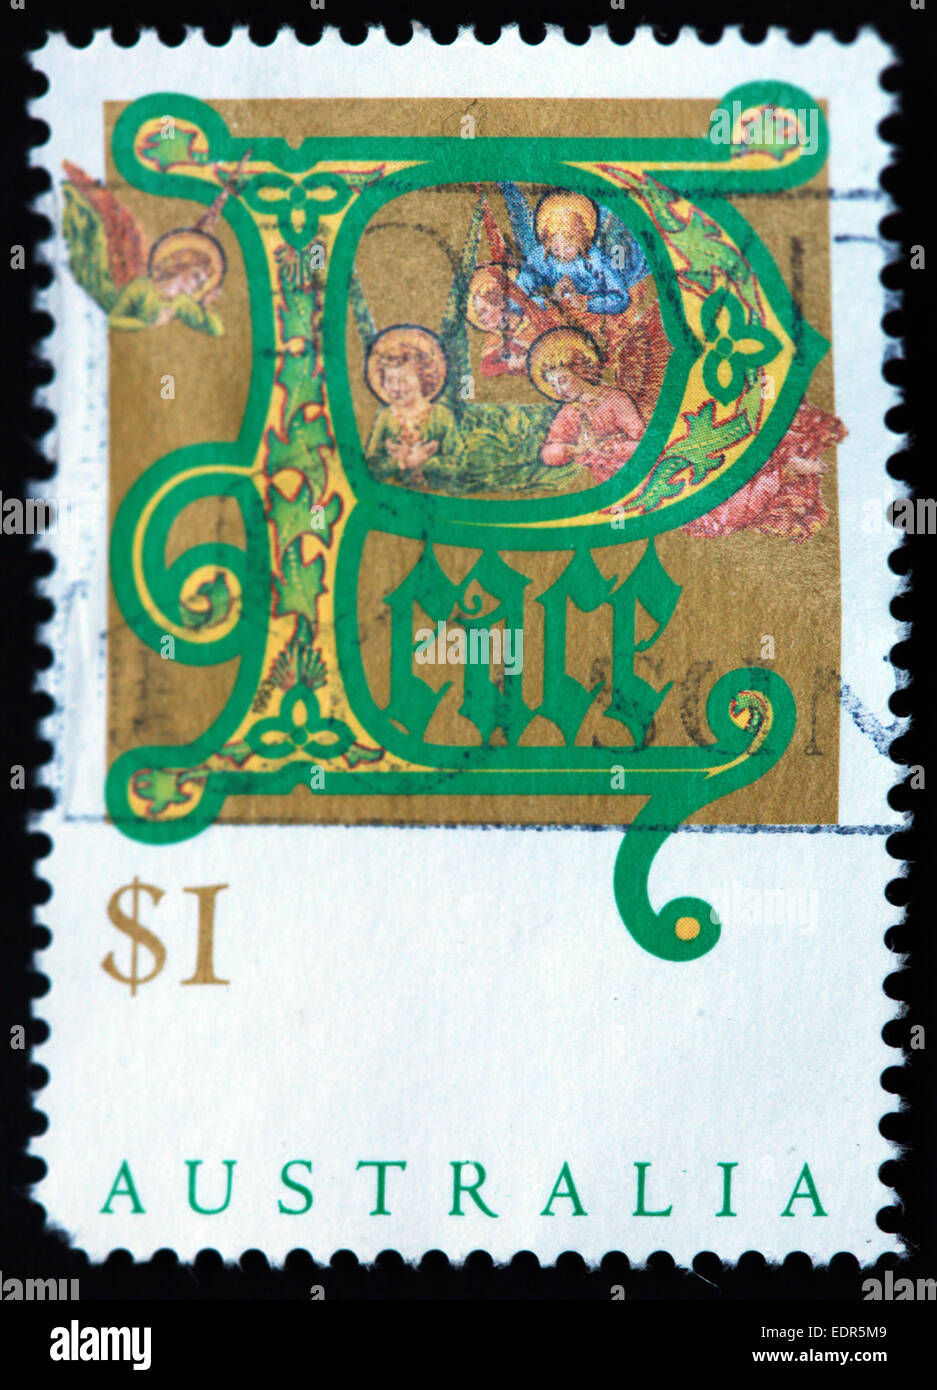 Christmas,December,25th,December 25th,Used and Postmarked,Used,and,postmarked,perforated,Australia,stamp,Used,and,postmarked,Australia,Austrailian,Stamp,post,posting,mail,hobby,perforation,mark,postage,stamp,print,stamp,cancelled,stamp,payment,correspondence,postman,collection,co,Gotonysmith,post,posting,mail,hobby,perforation,mark,postage,stamp,print,stamp,cancelled,canceled,stamp,payment,correspondence,postman,collection,collector,philately,philatelist,letter,price,history,retro,Australian,Vintage,delivery,date,relationship,communication,Oz,Australia,DownUnder,classic rare unique Austrailian financial,investment,invest,value,British,empire,nation,canceled,printed on black background,close-up,closeup,close,up,sent,send,philately,mailing,shipping,postoffice,office,isolated,circa,special,colour,color,postmarked,marked,airmail,aged,antique,retro,cutting,historic,old,stamps,collection,stamp collection,album,Timbre,Sello,Stempel,Selo,Down Under,Black background